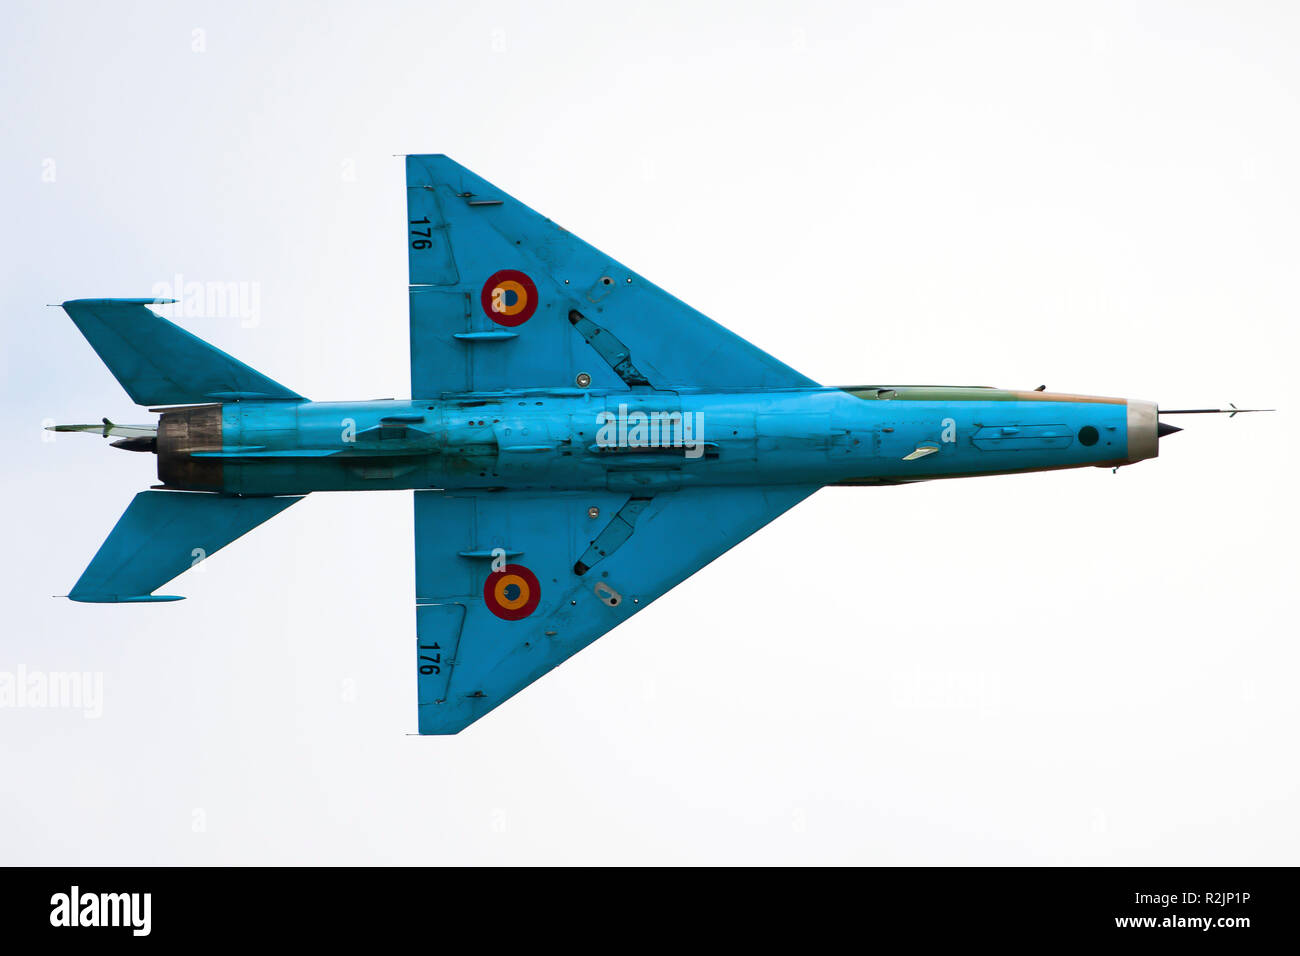 Undercarriage of a Romanian Air Force Mikoyan-Gurevich MiG-21. - Stock Image